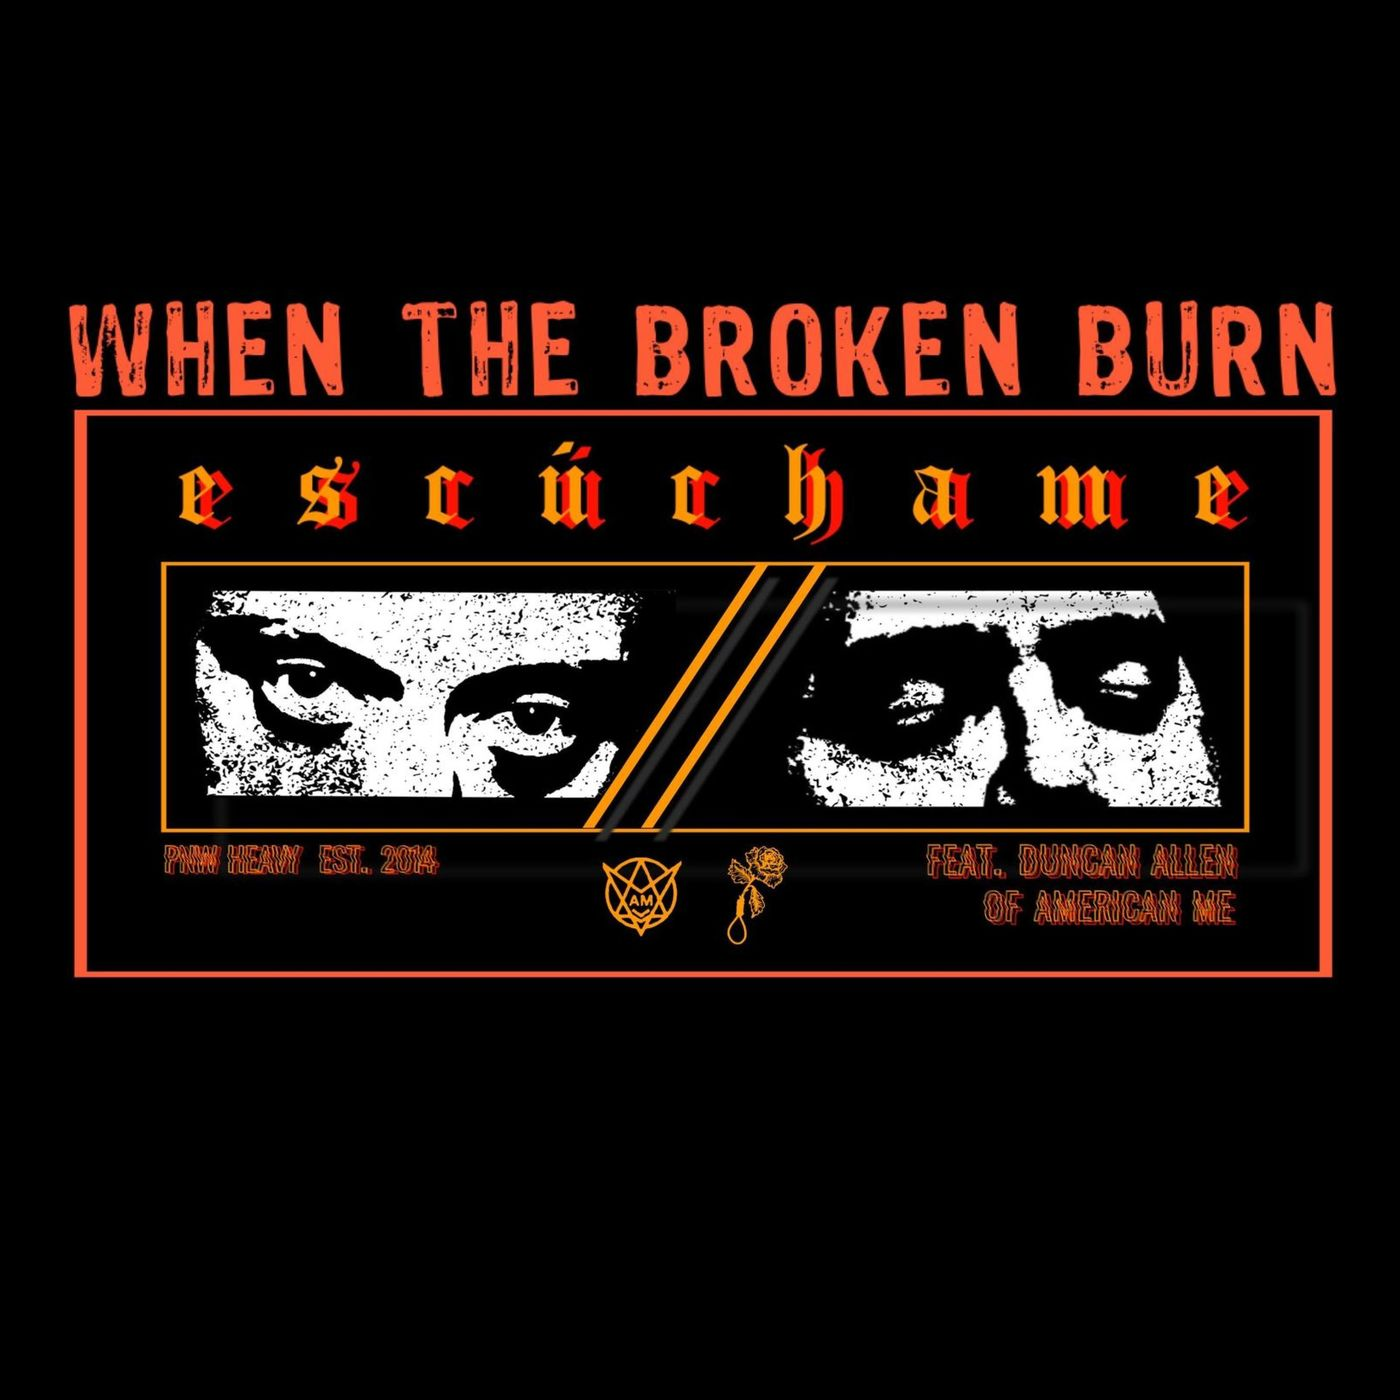 When the Broken Burn - ESCUCHAME [single] (2020)